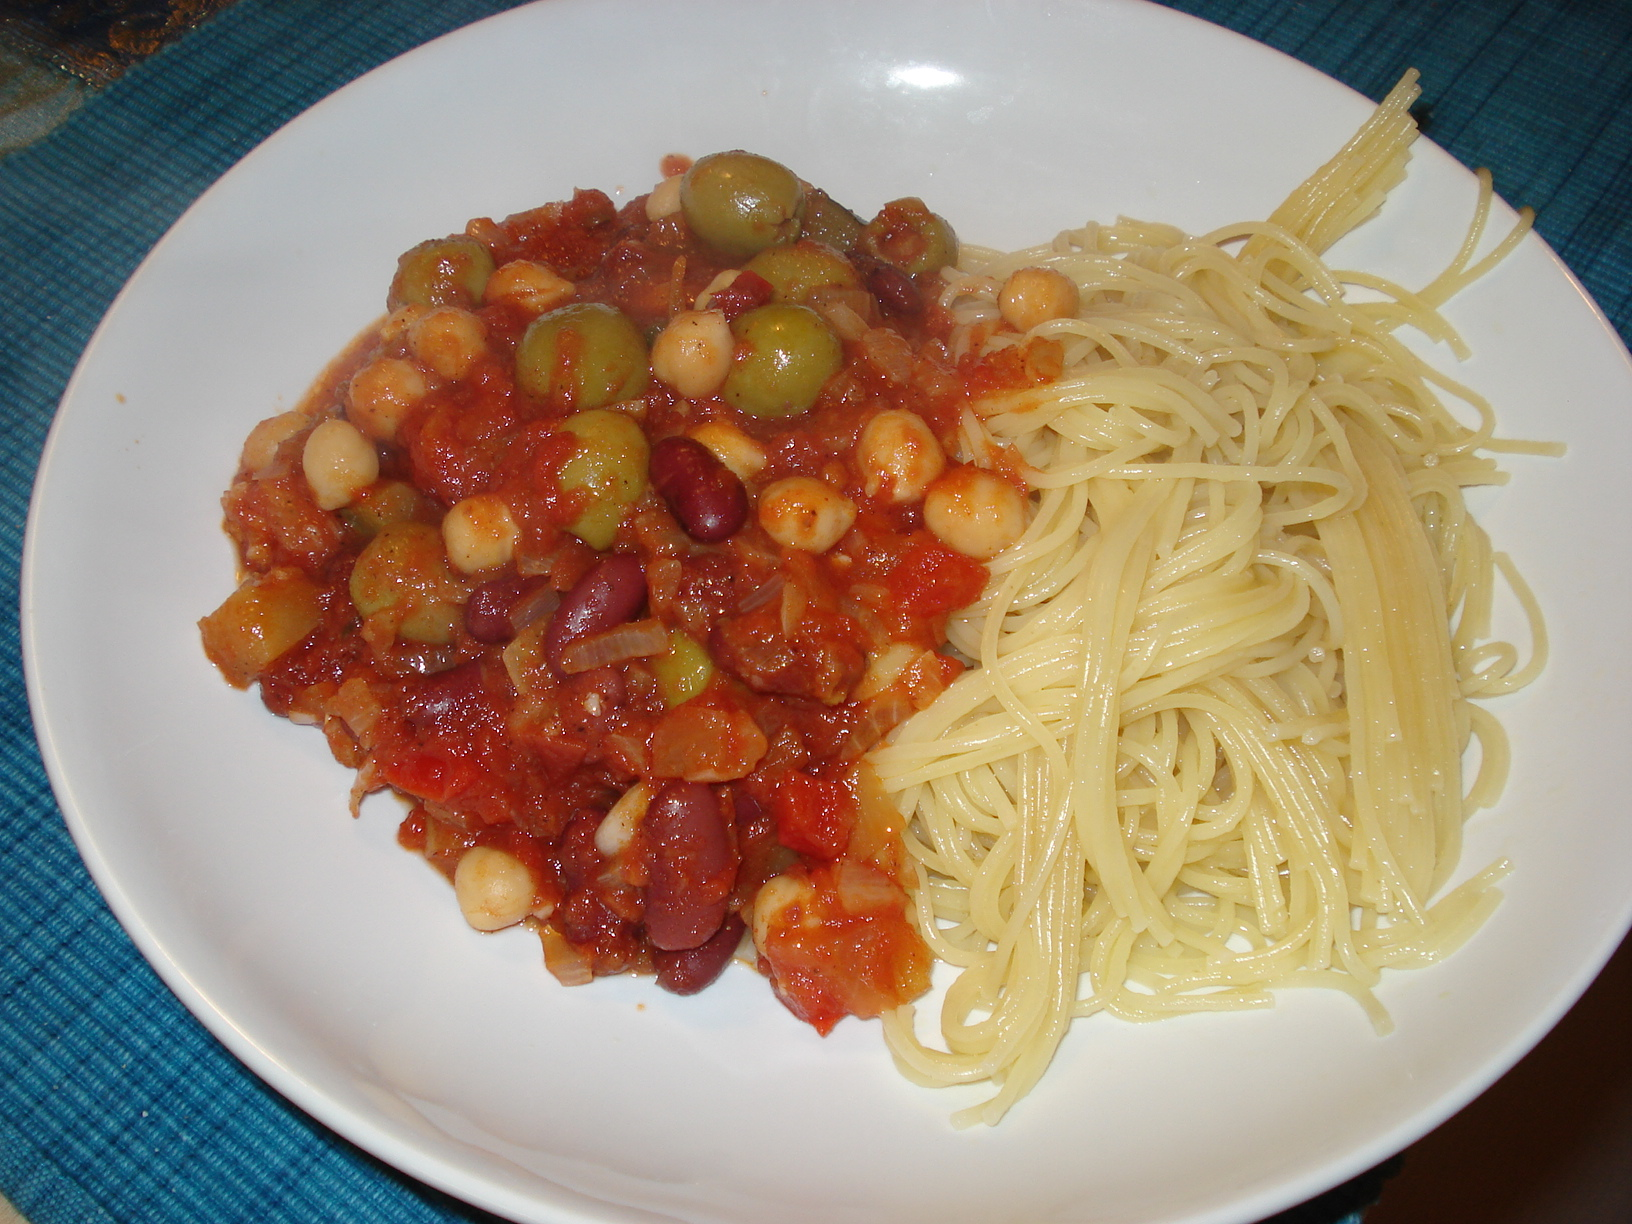 Vegetarian spaghetti bolognese with olives